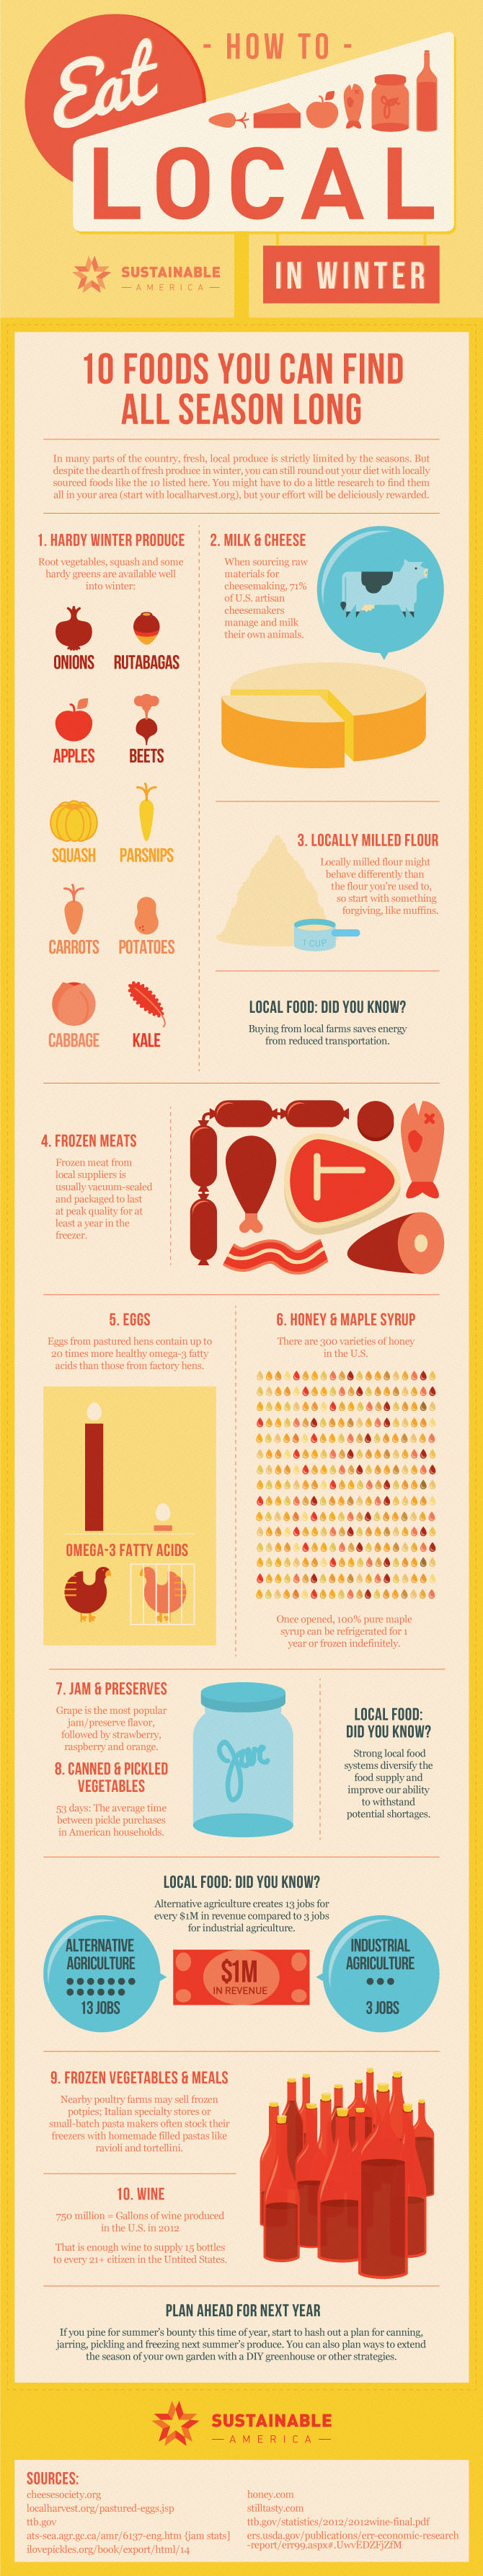 How to Eat Local in Winter infographic